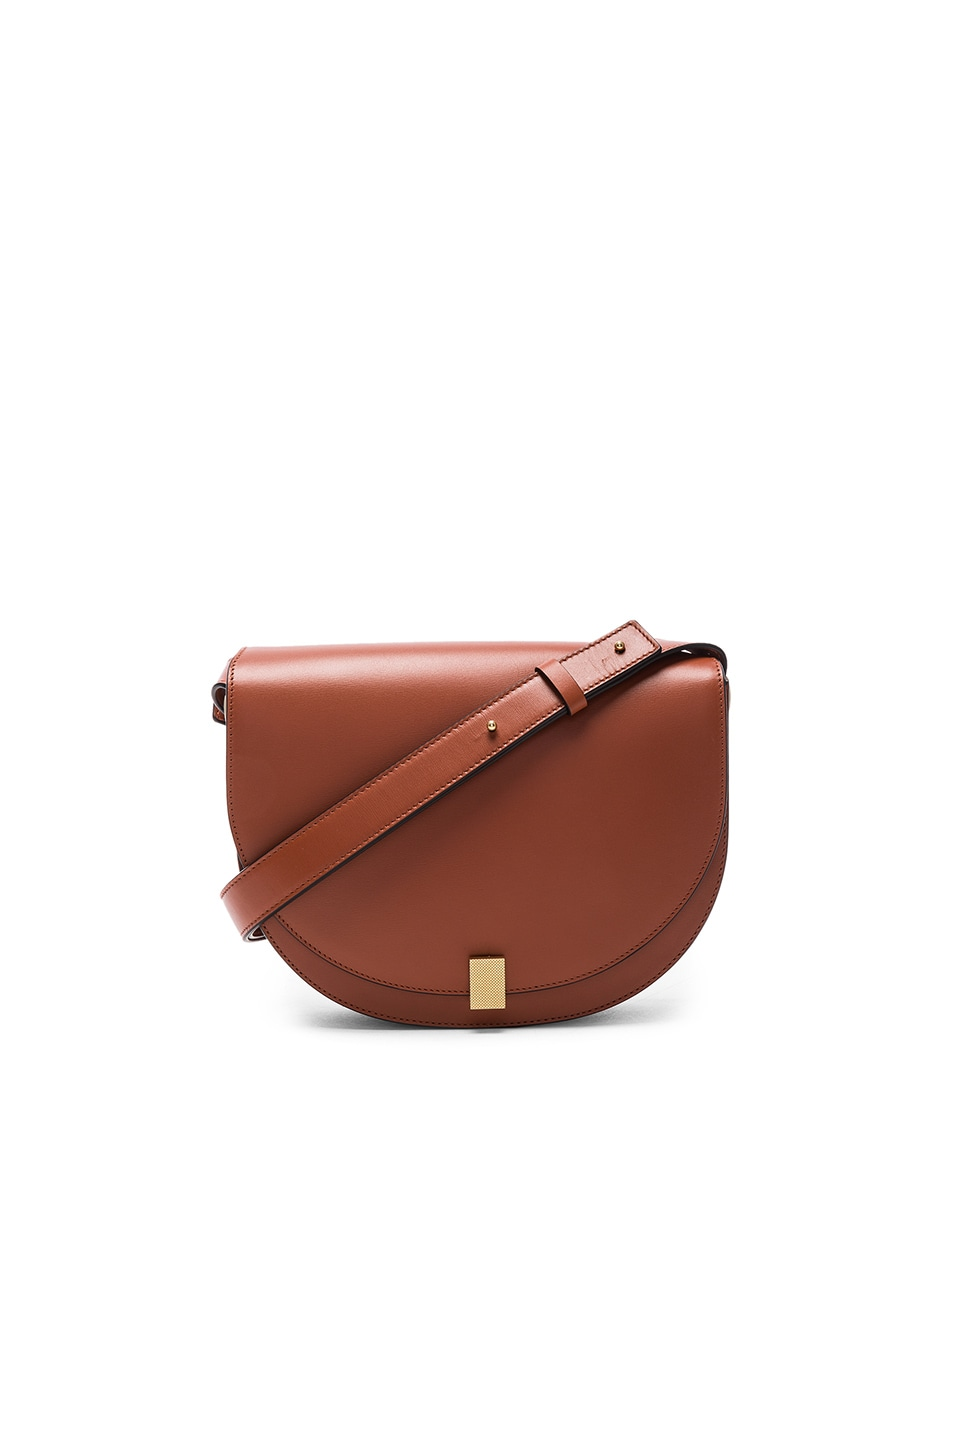 Image 1 of Victoria Beckham Half Moon Box Bag in Cognac